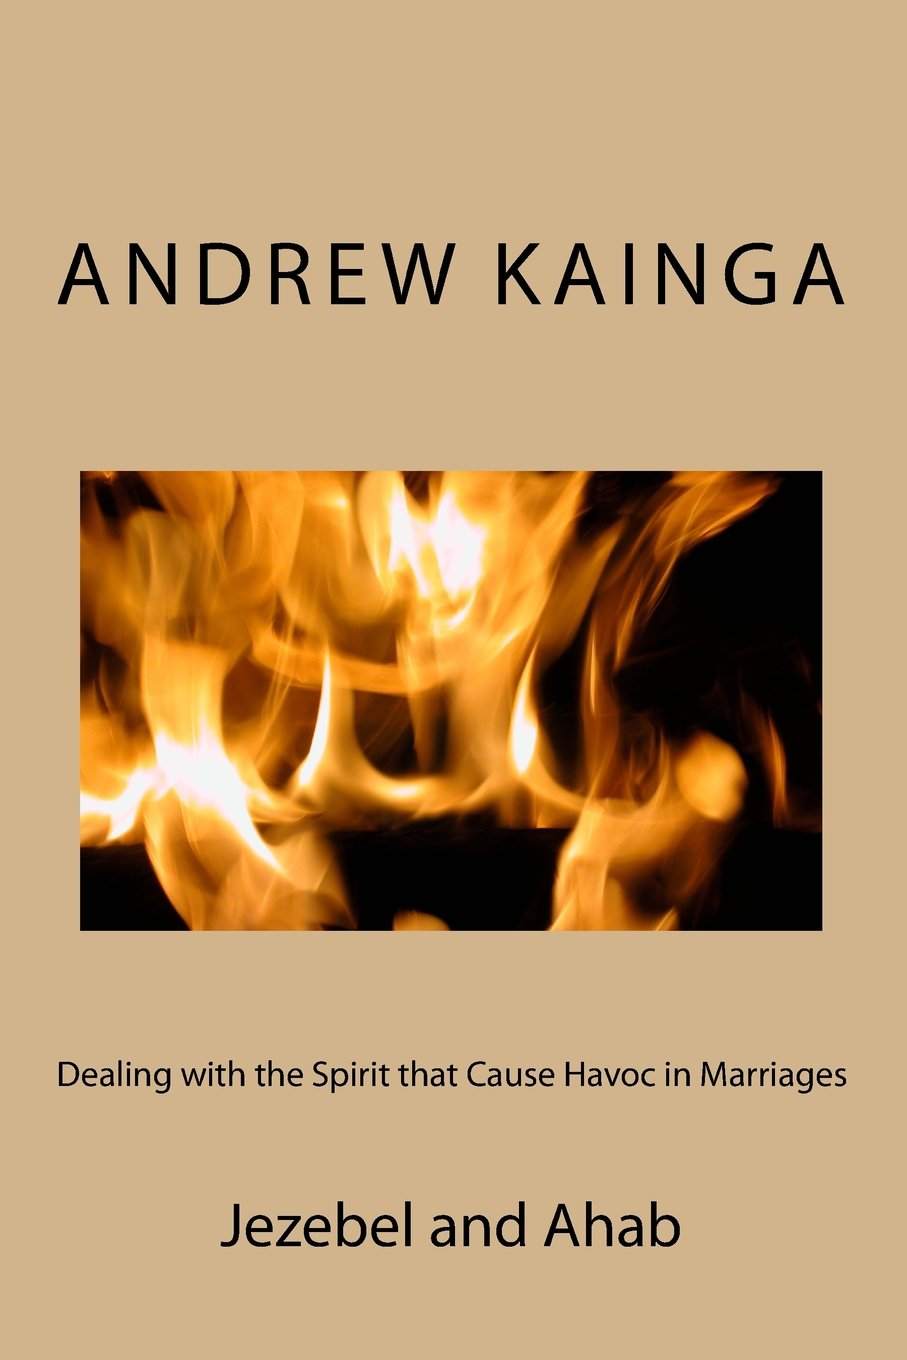 Dealing with the Spirit that Cause Havoc in Marriages